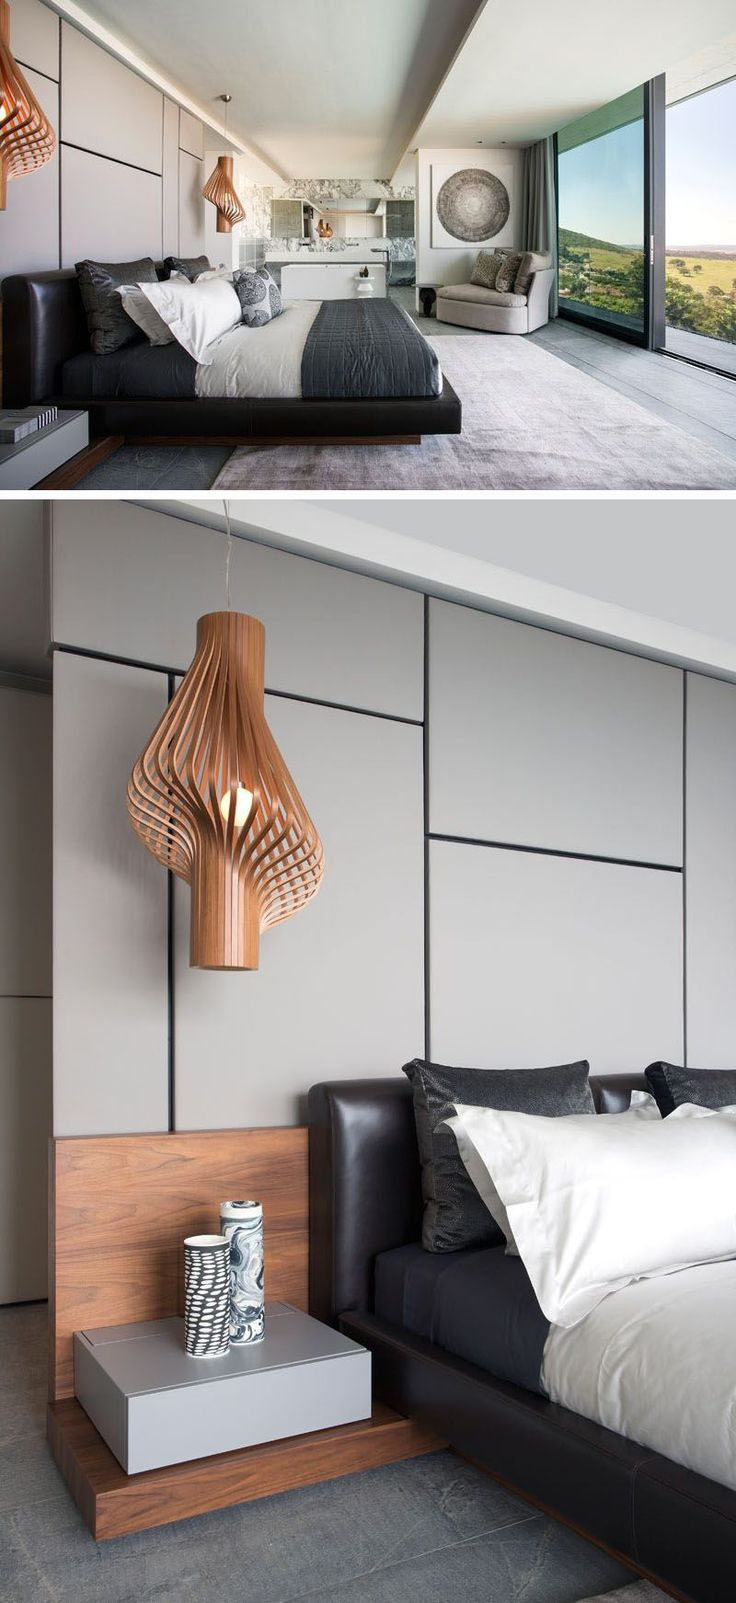 5 Things That Are Hot On Pinterest This Week Bedroom Lampsbedroom Apartmentwood Pendant Lightpendant Lightsmodern Master